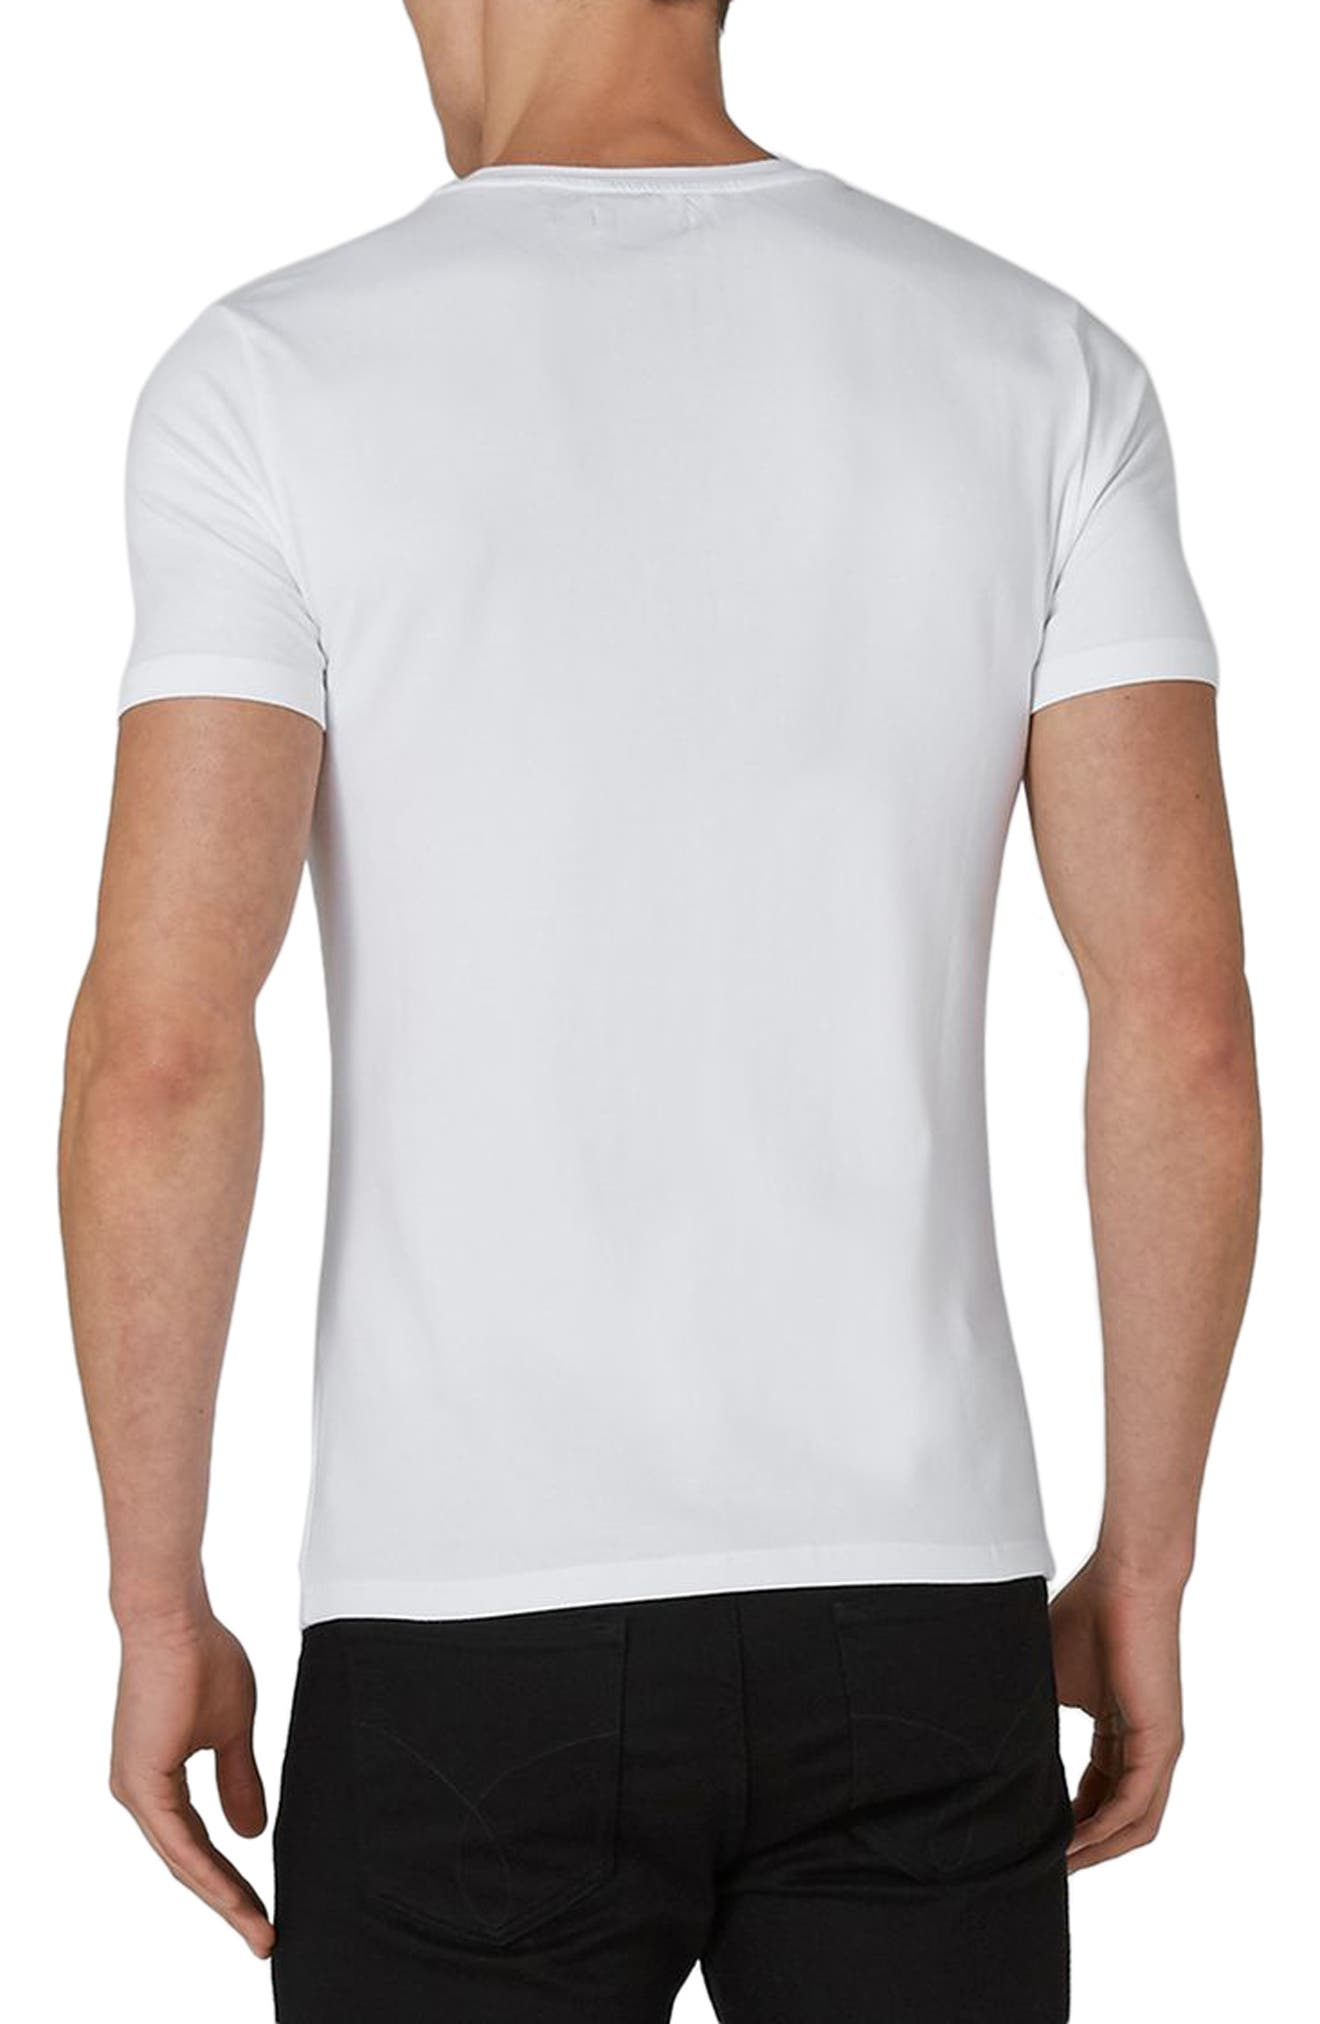 Ultra Muscle Fit T-Shirt,                             Alternate thumbnail 2, color,                             100